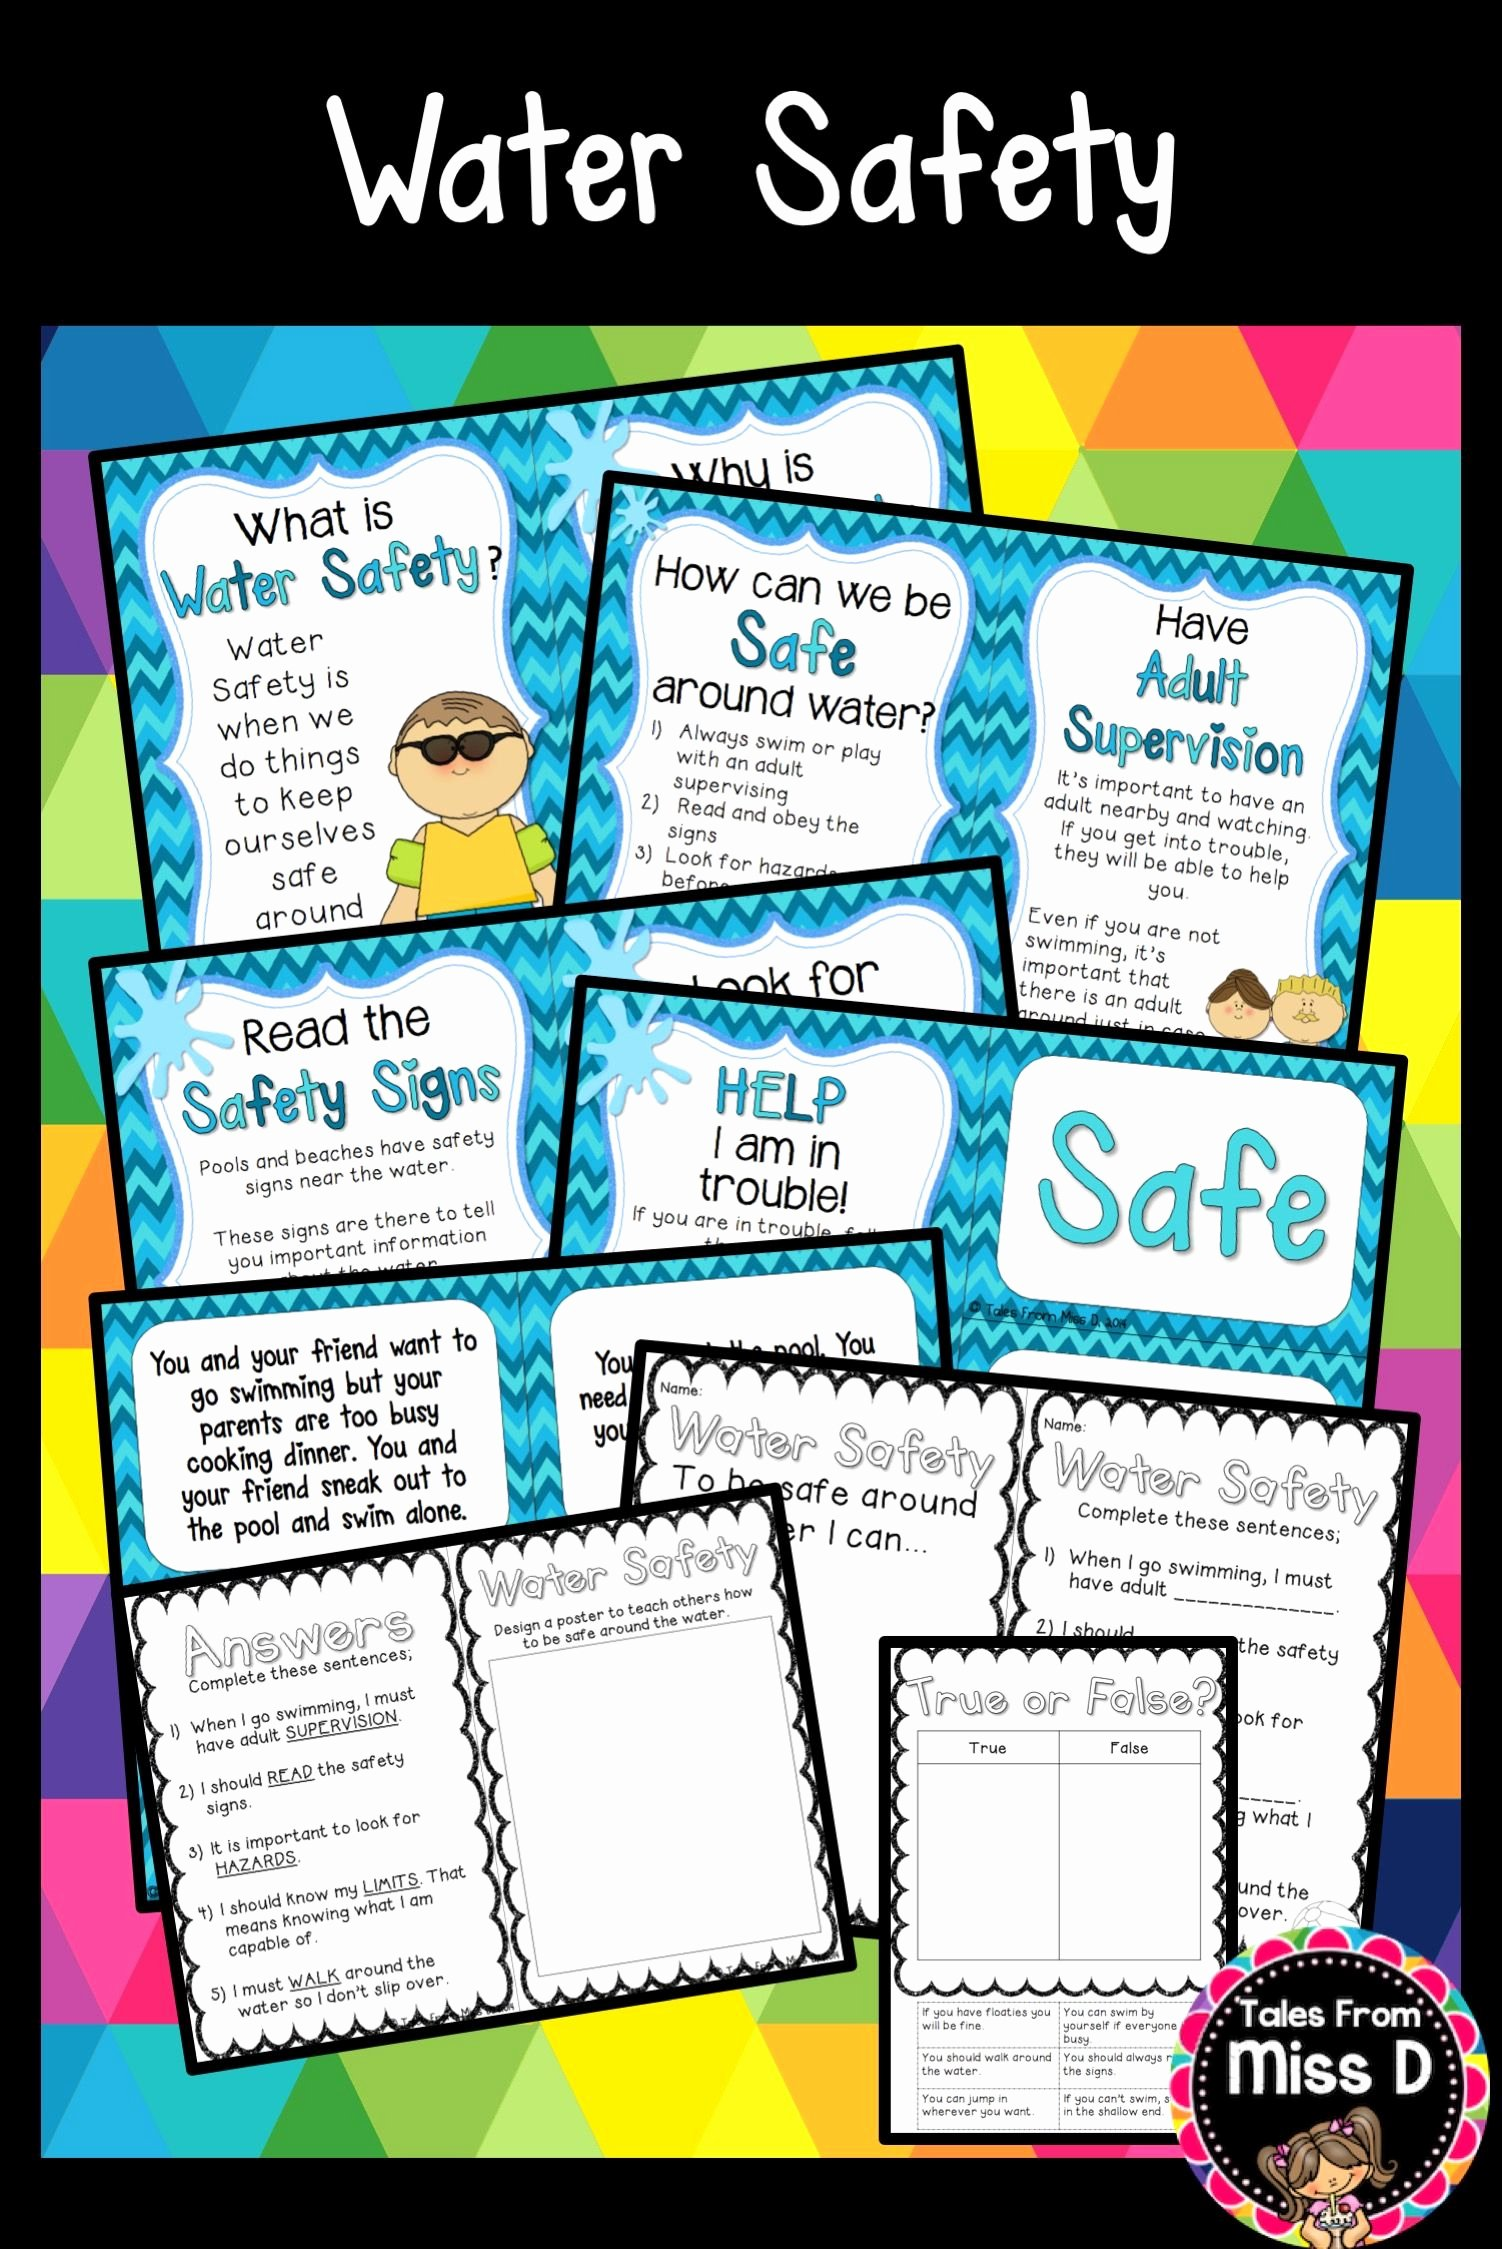 Water Safety Worksheets for Preschoolers Lovely Water Safety